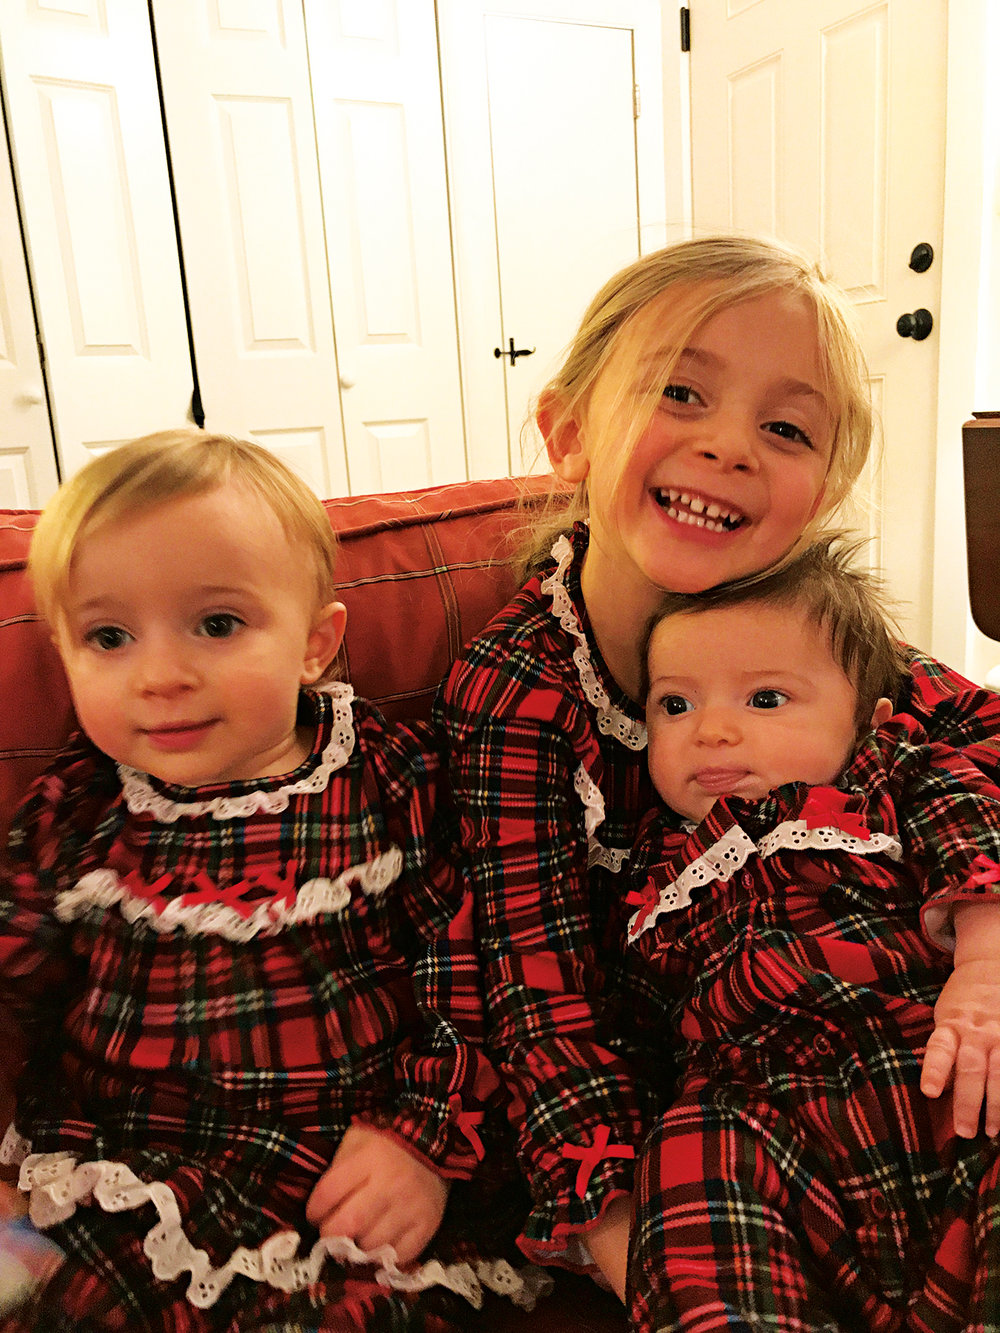 Madeleine Grace Ball, daughter of Steve Ball '95, was born in September, joining sisters Eleanor and Abigail.